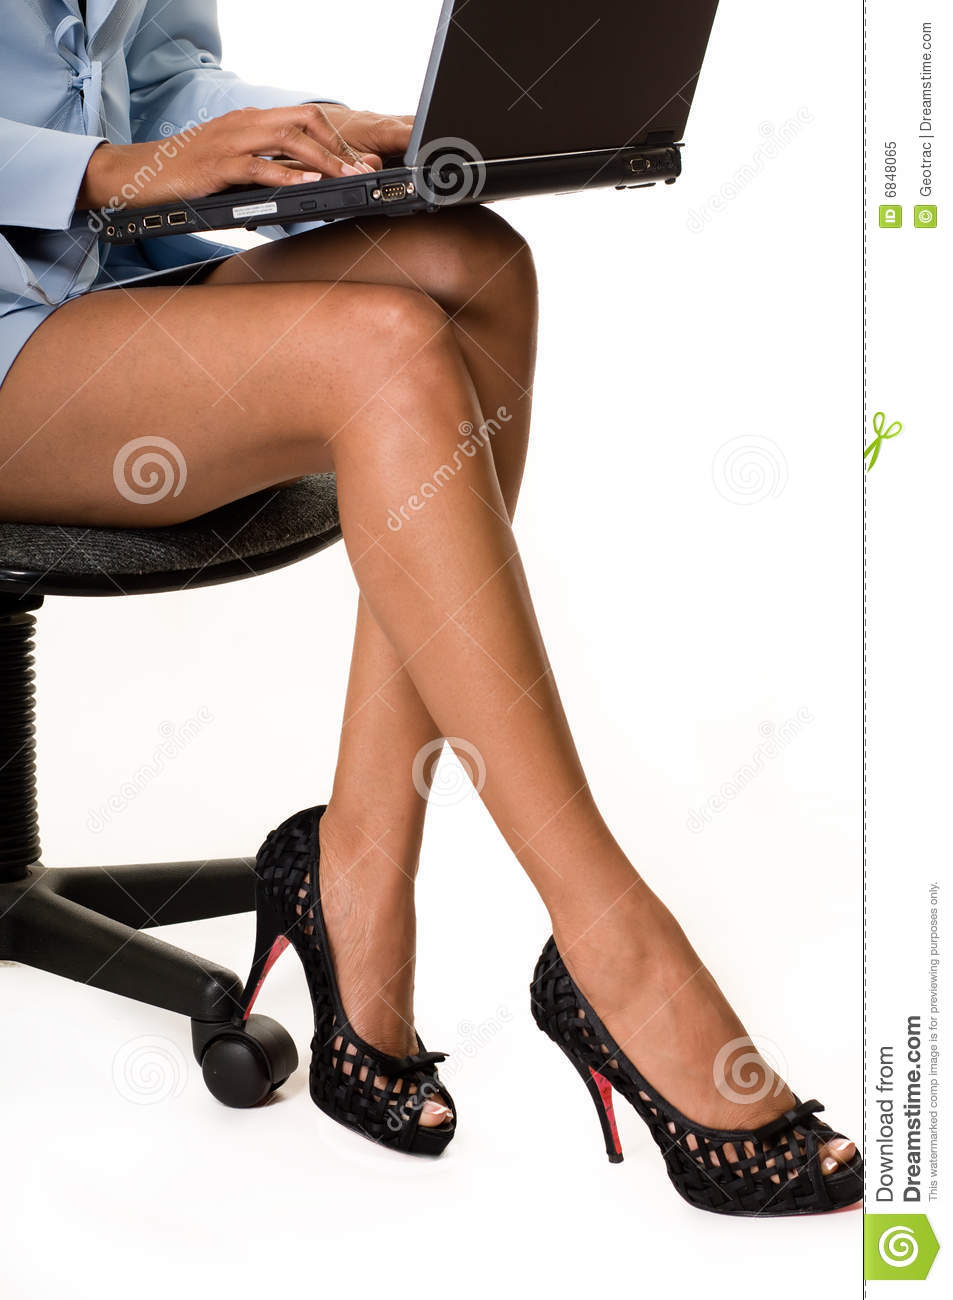 best type of office chair with Royalty Free Stock Photo Business Woman Legs Image6848065 on S353418 further Item Double Press Back Oak Chair 1C04 502 ICFS 1C04 502ic moreover Fea8557bb2e011fc furthermore Electric Portable Stove Hot Plate Cooker further Eames Lounge Chair And Ottoman.